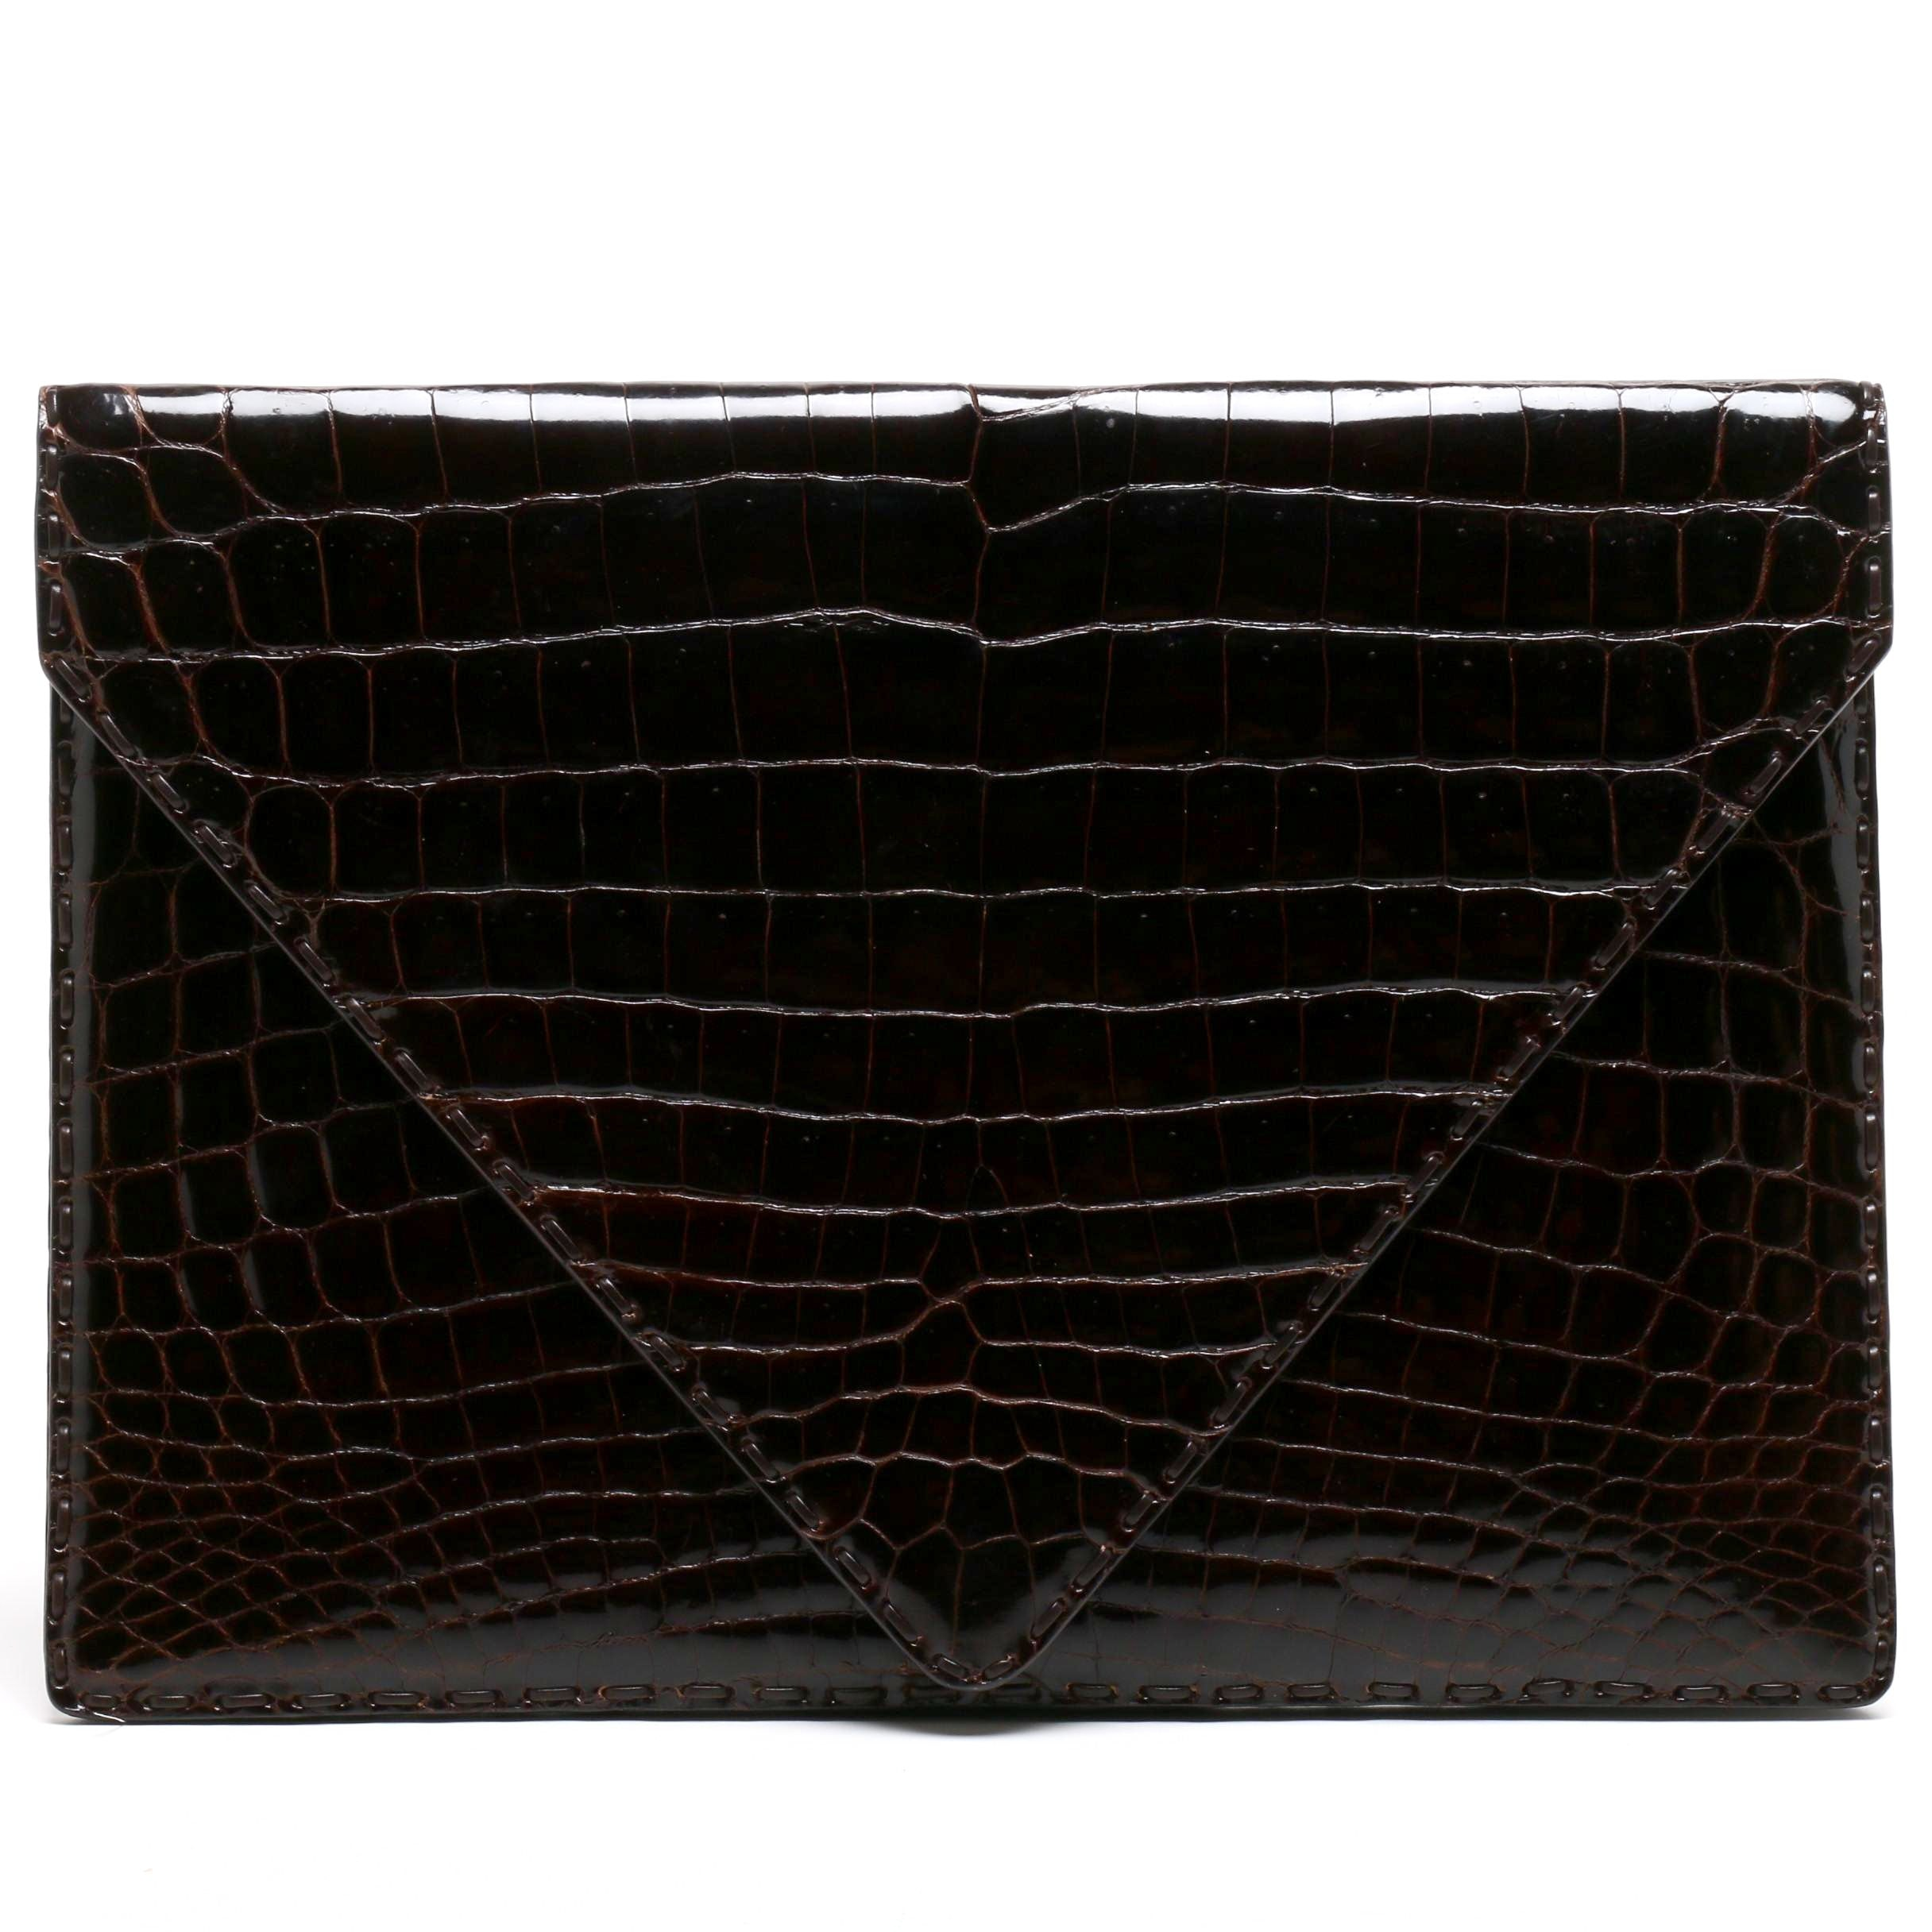 Bottega Veneta Dark Brown Crocodile Envelope Clutch